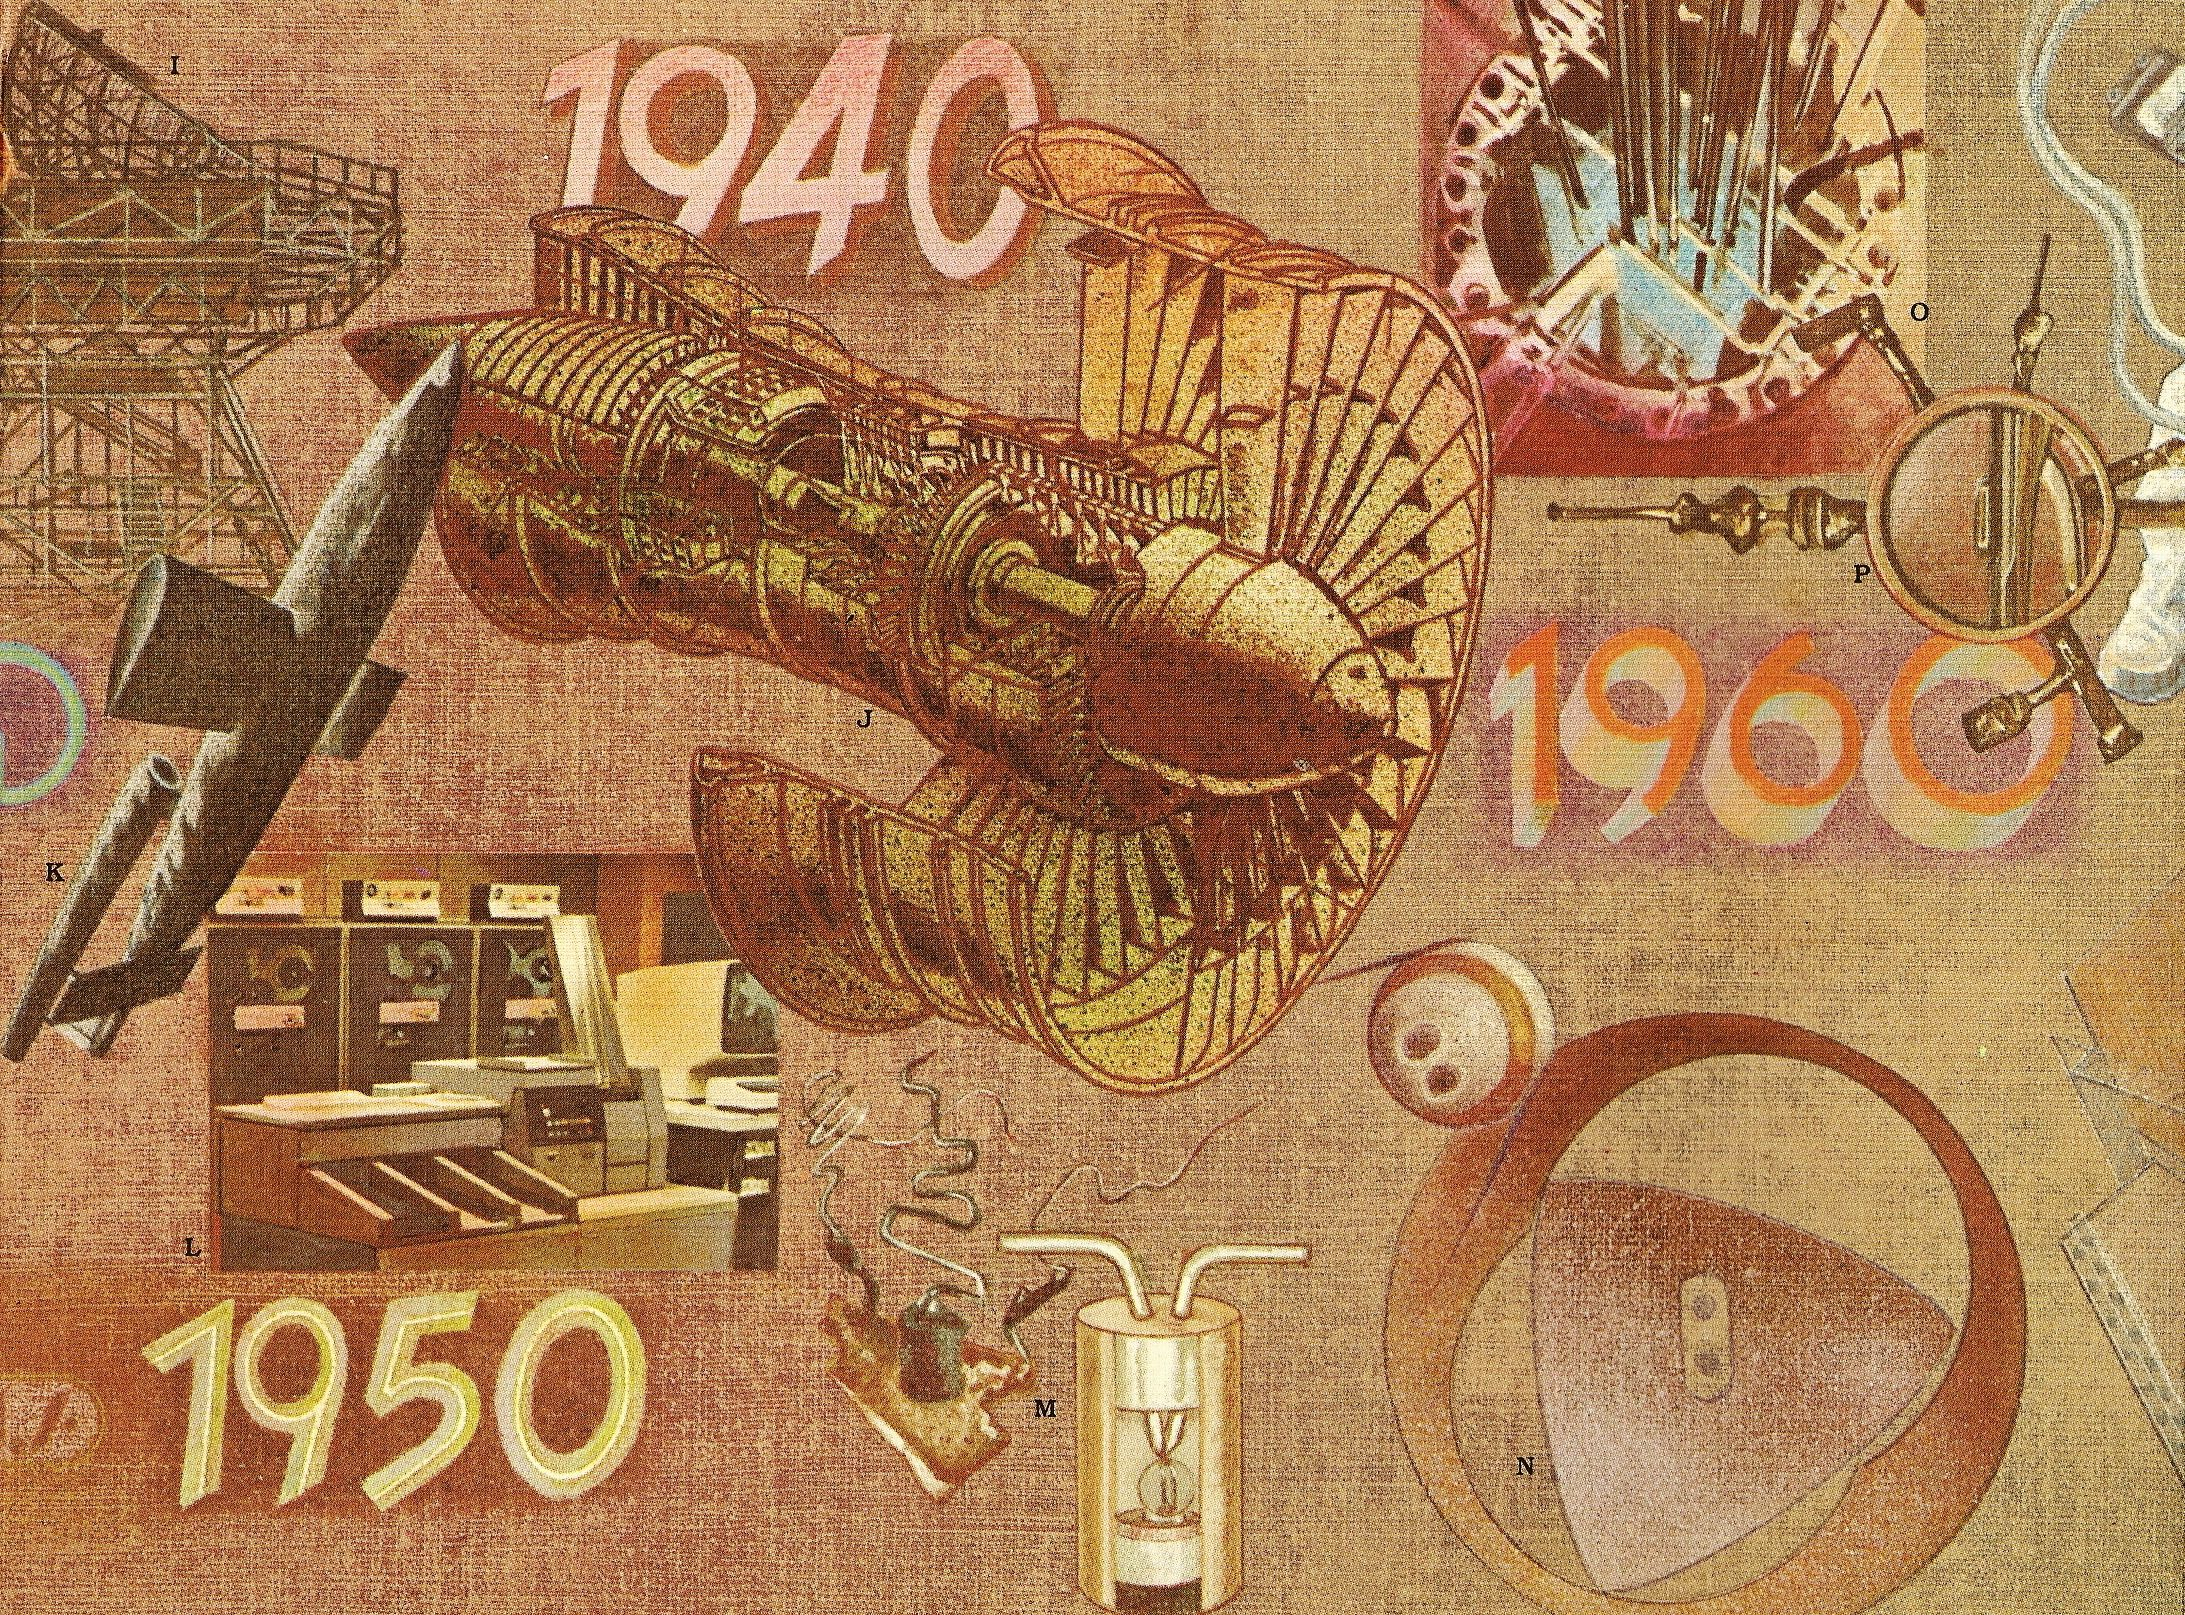 Brochure art for the Dolph Corporation Annual Report -1940-1960